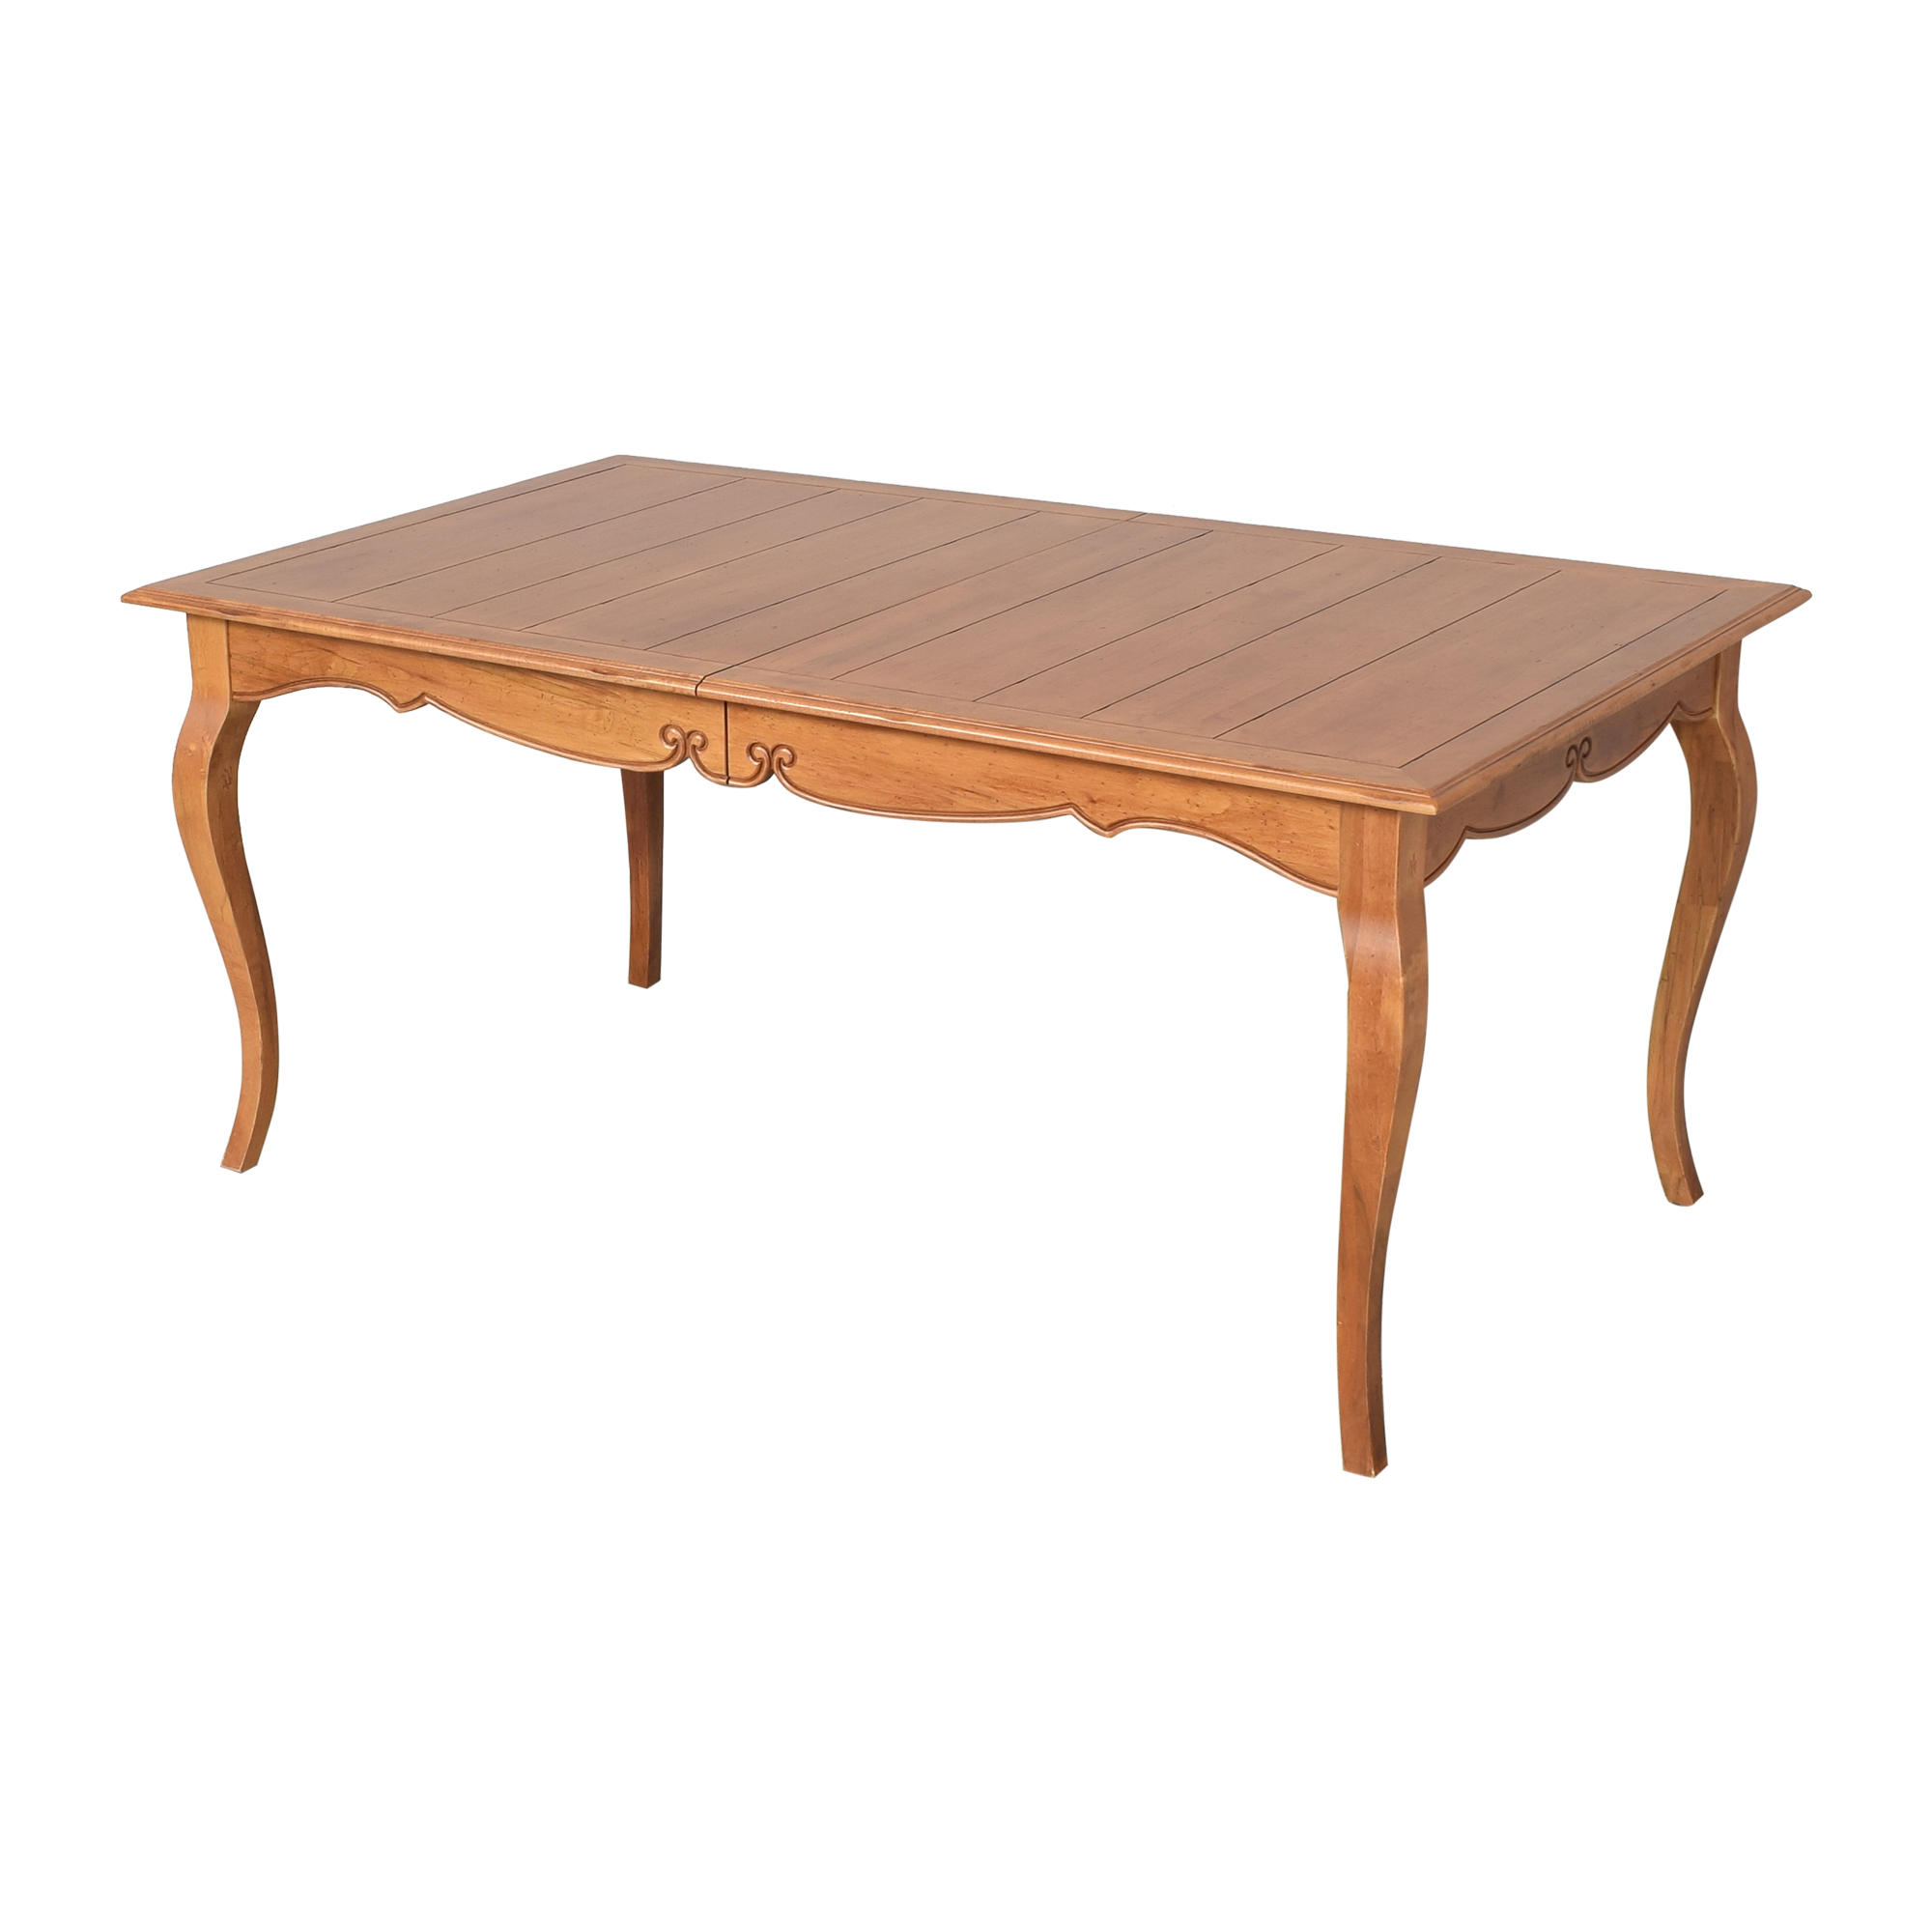 Ethan Allen Ethan Allen Legacy Collection Extendable Dining Table ma